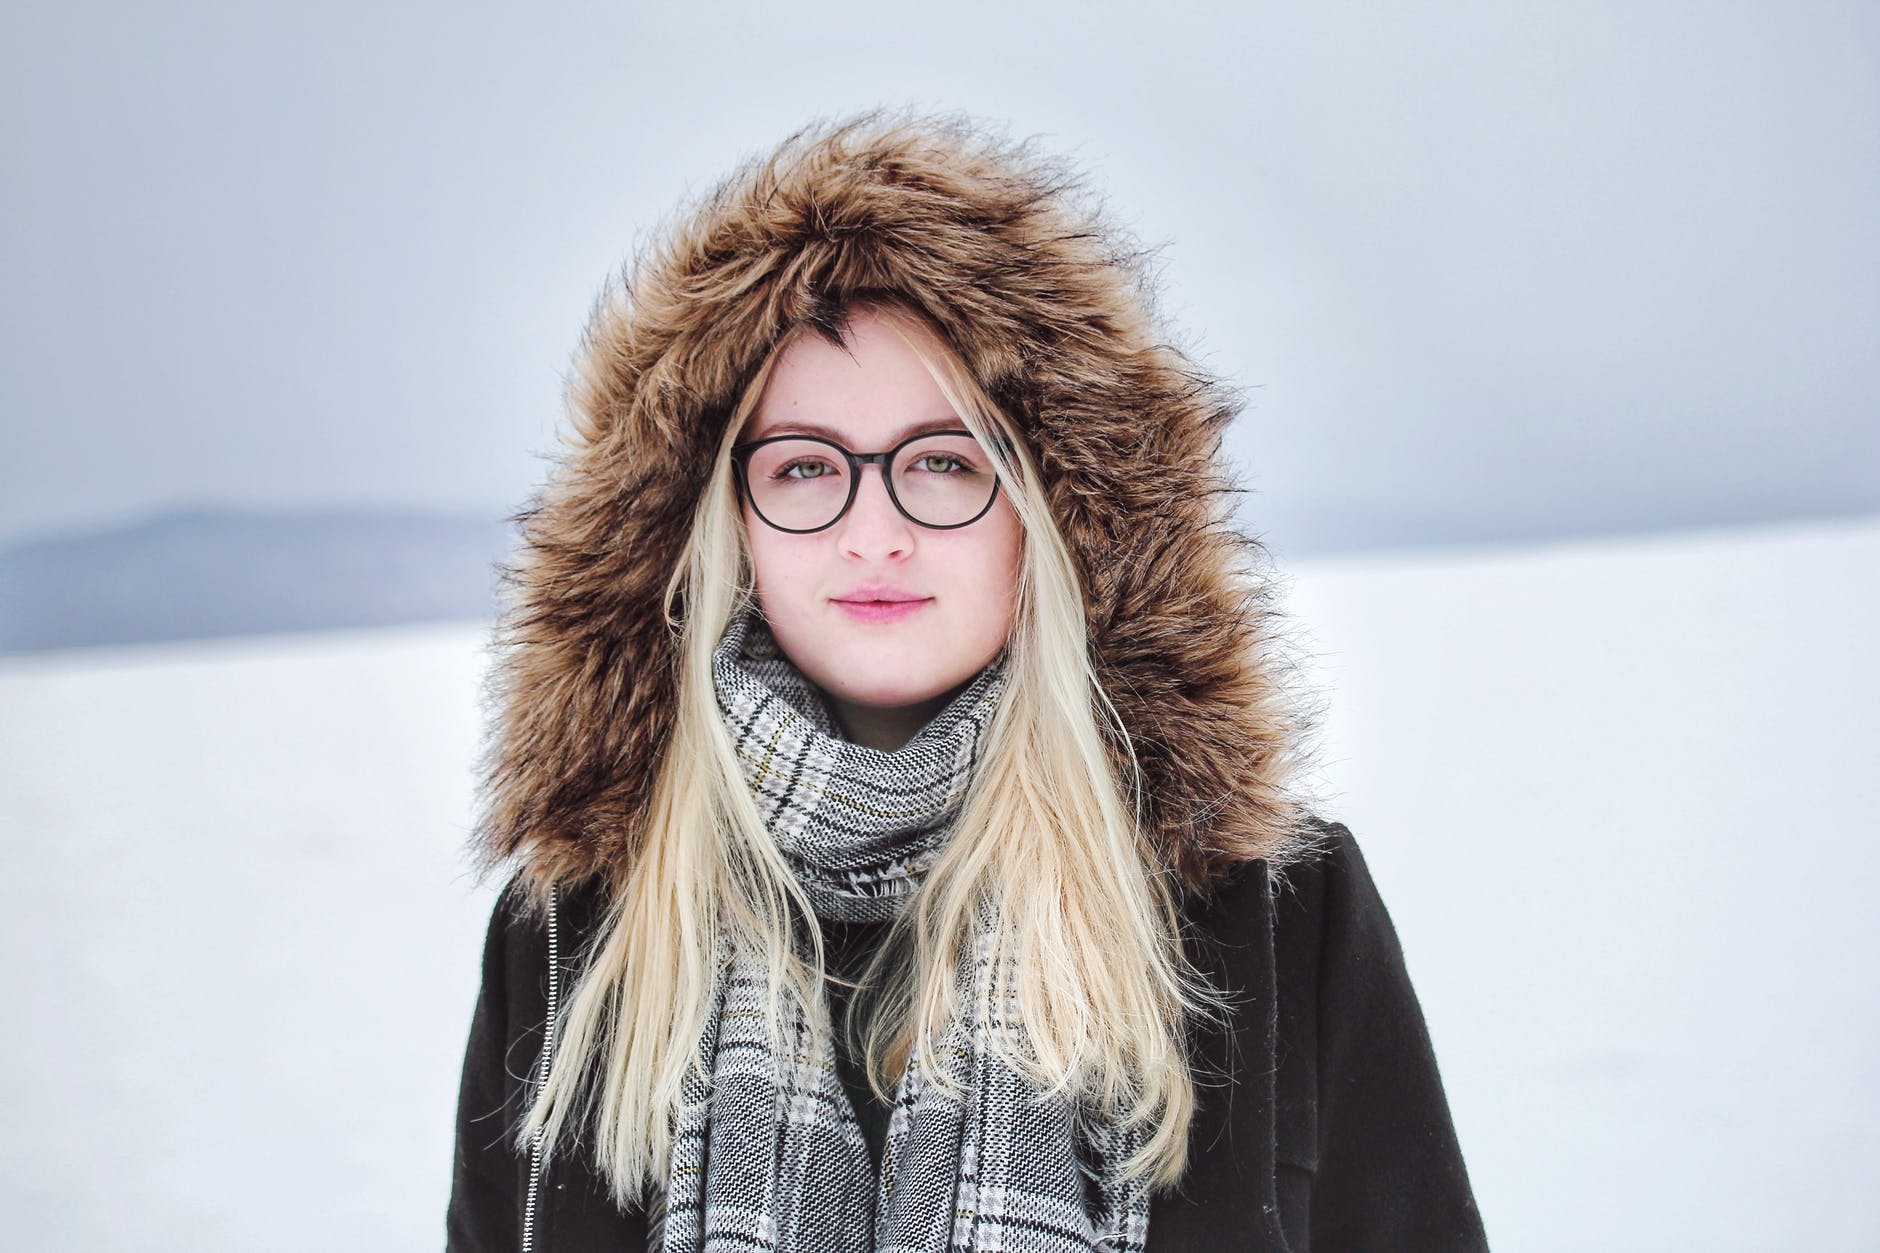 Winter Woes: Preventing and Treating Windburn